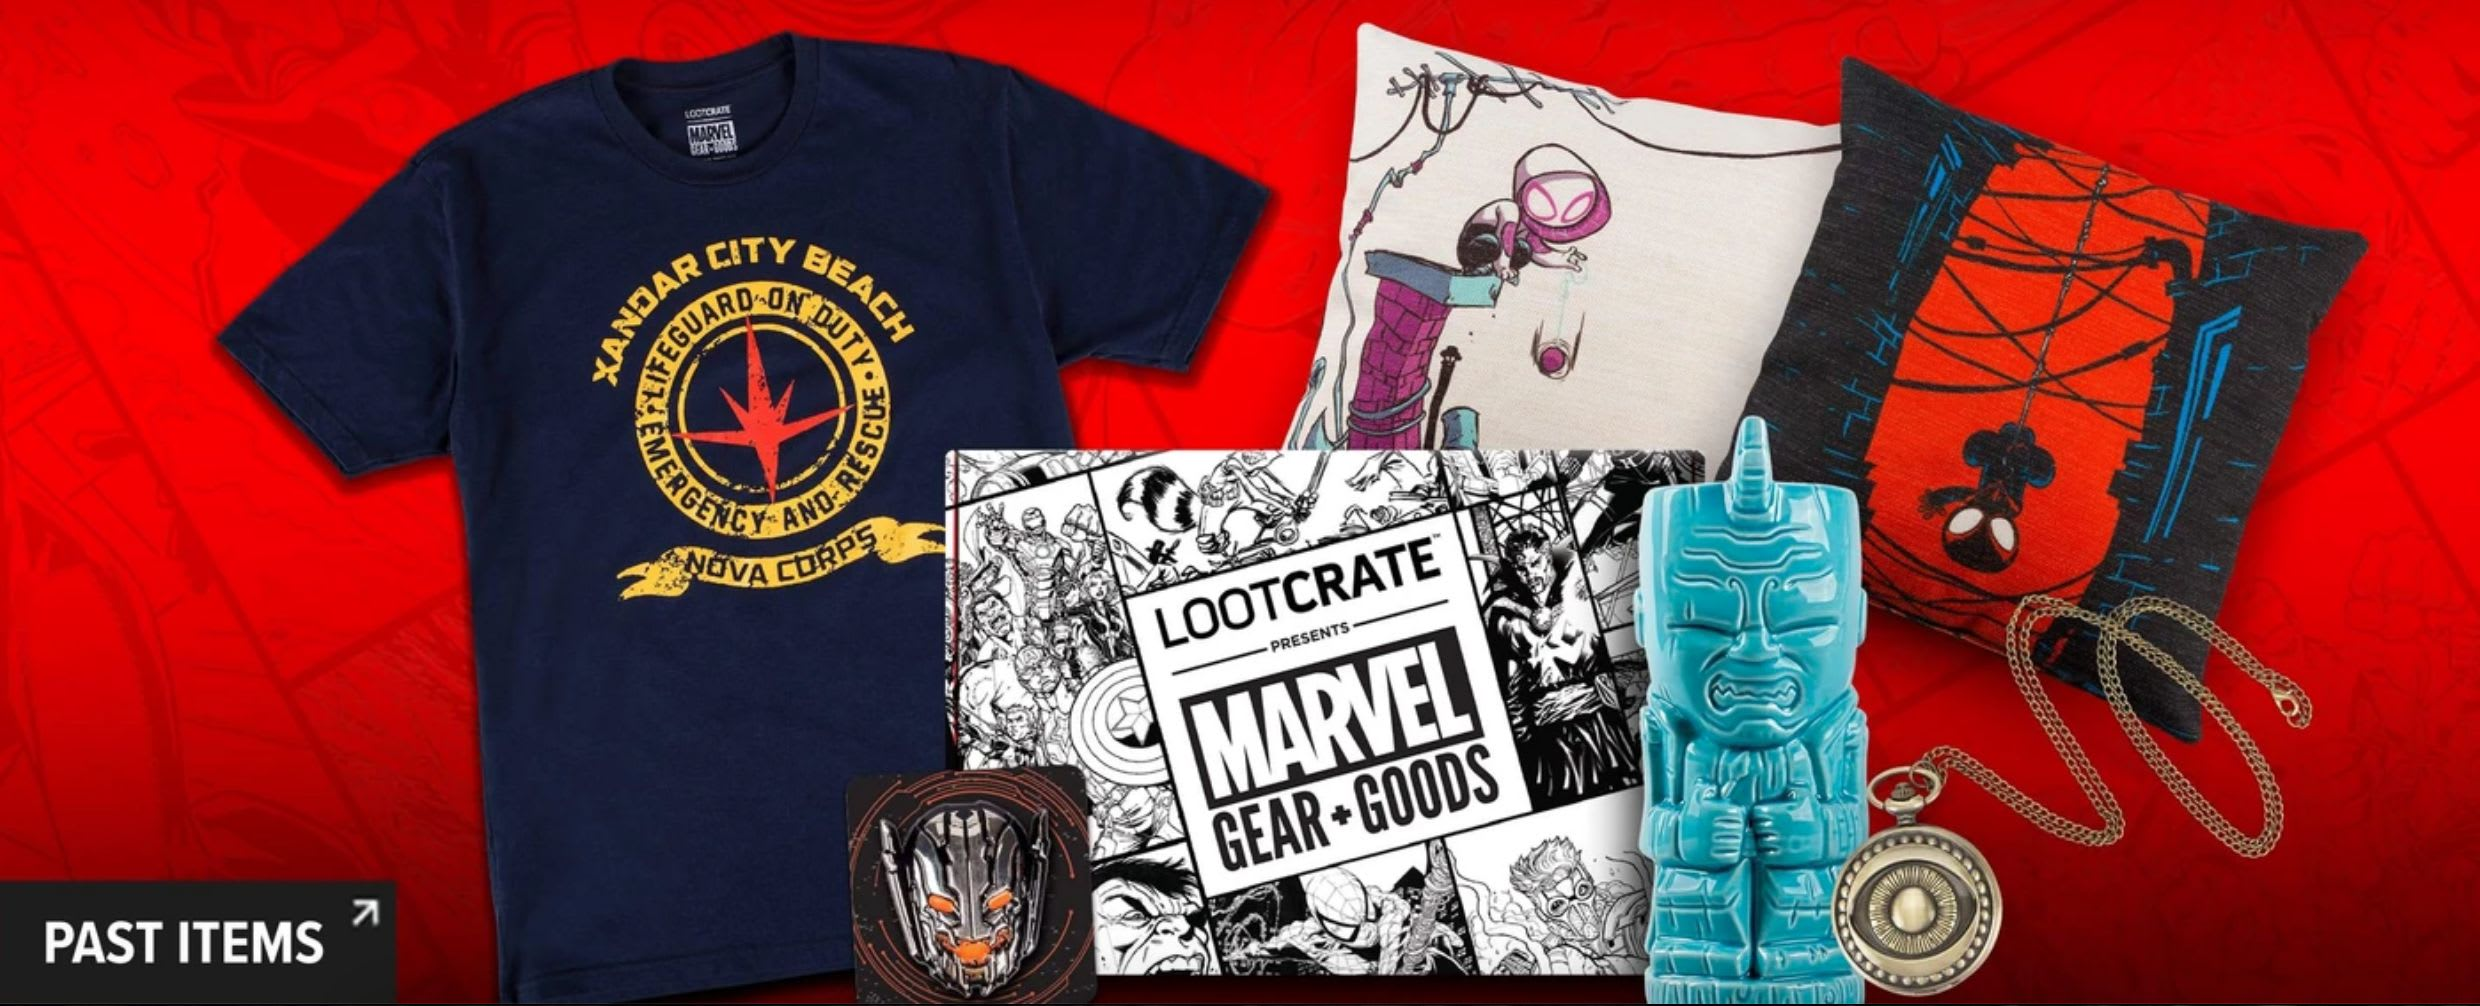 Discover Loot Crate's Official Marvel Home Goods, Apparel and more subscription box.